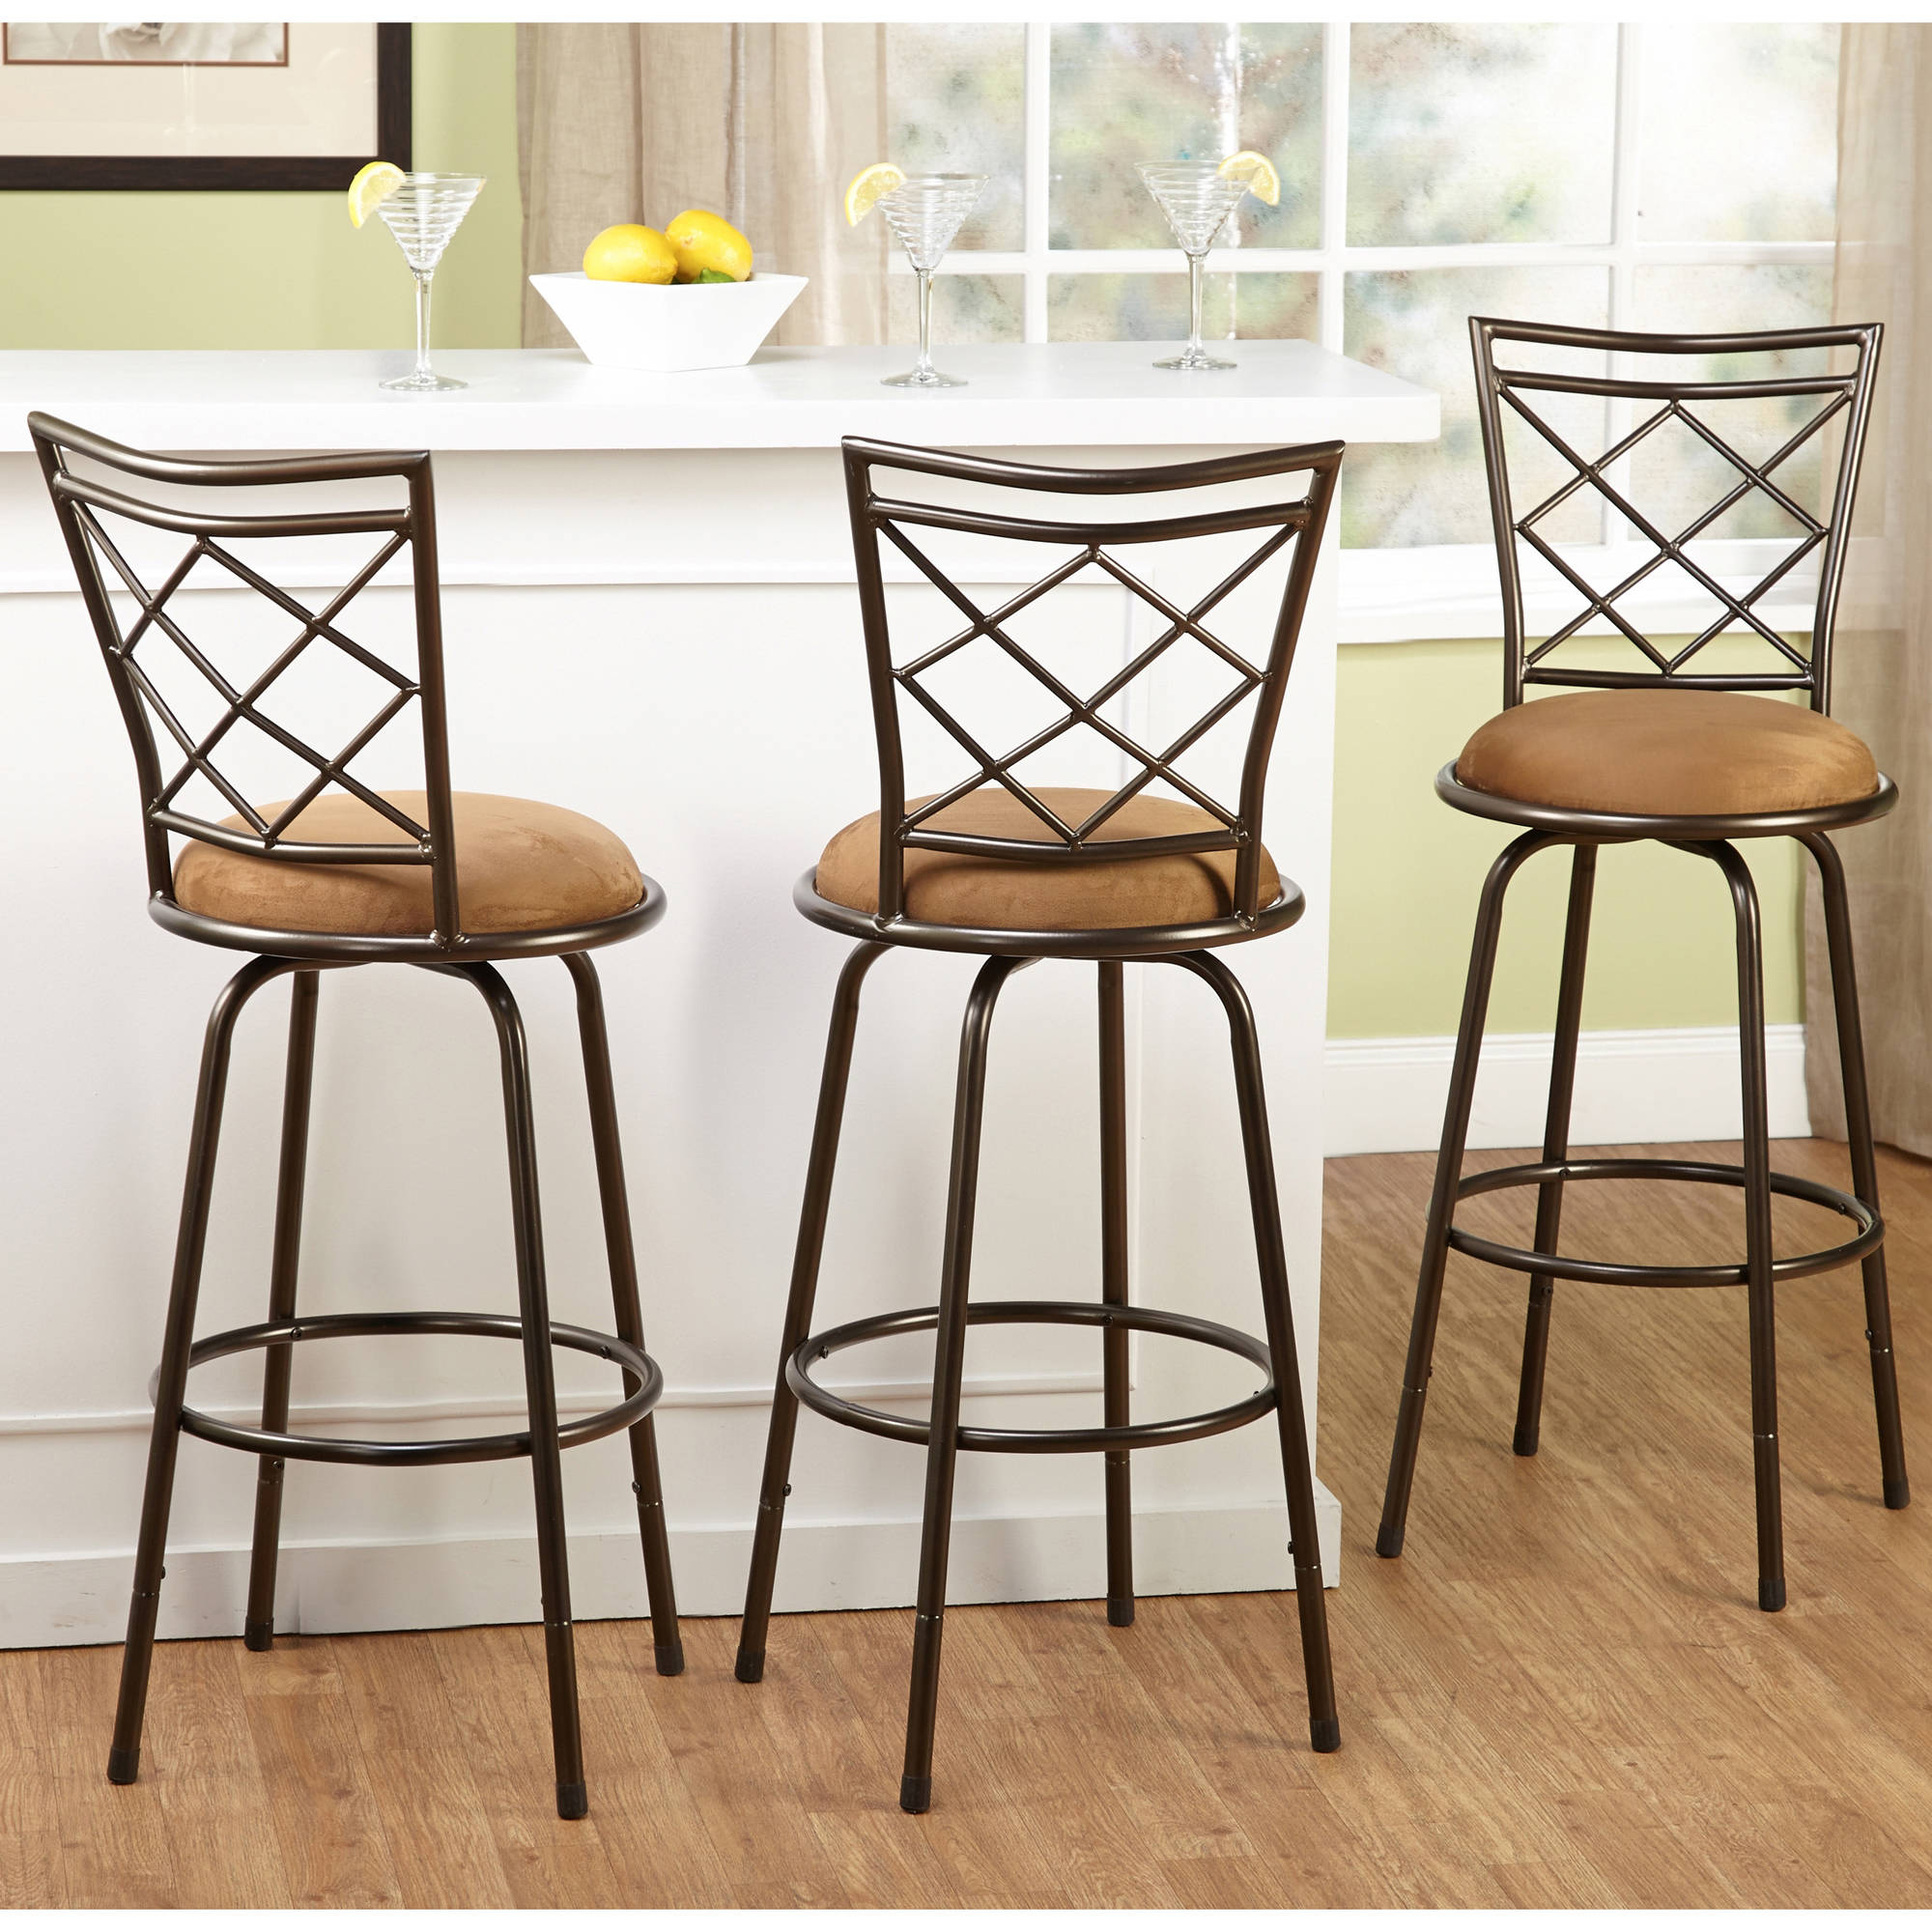 Preferred Tms Avery Adjustable Height Bar Stool, Multiple Colors, Set Of 3 Inside Sheetz 3 Piece Counter Height Dining Sets (View 15 of 25)